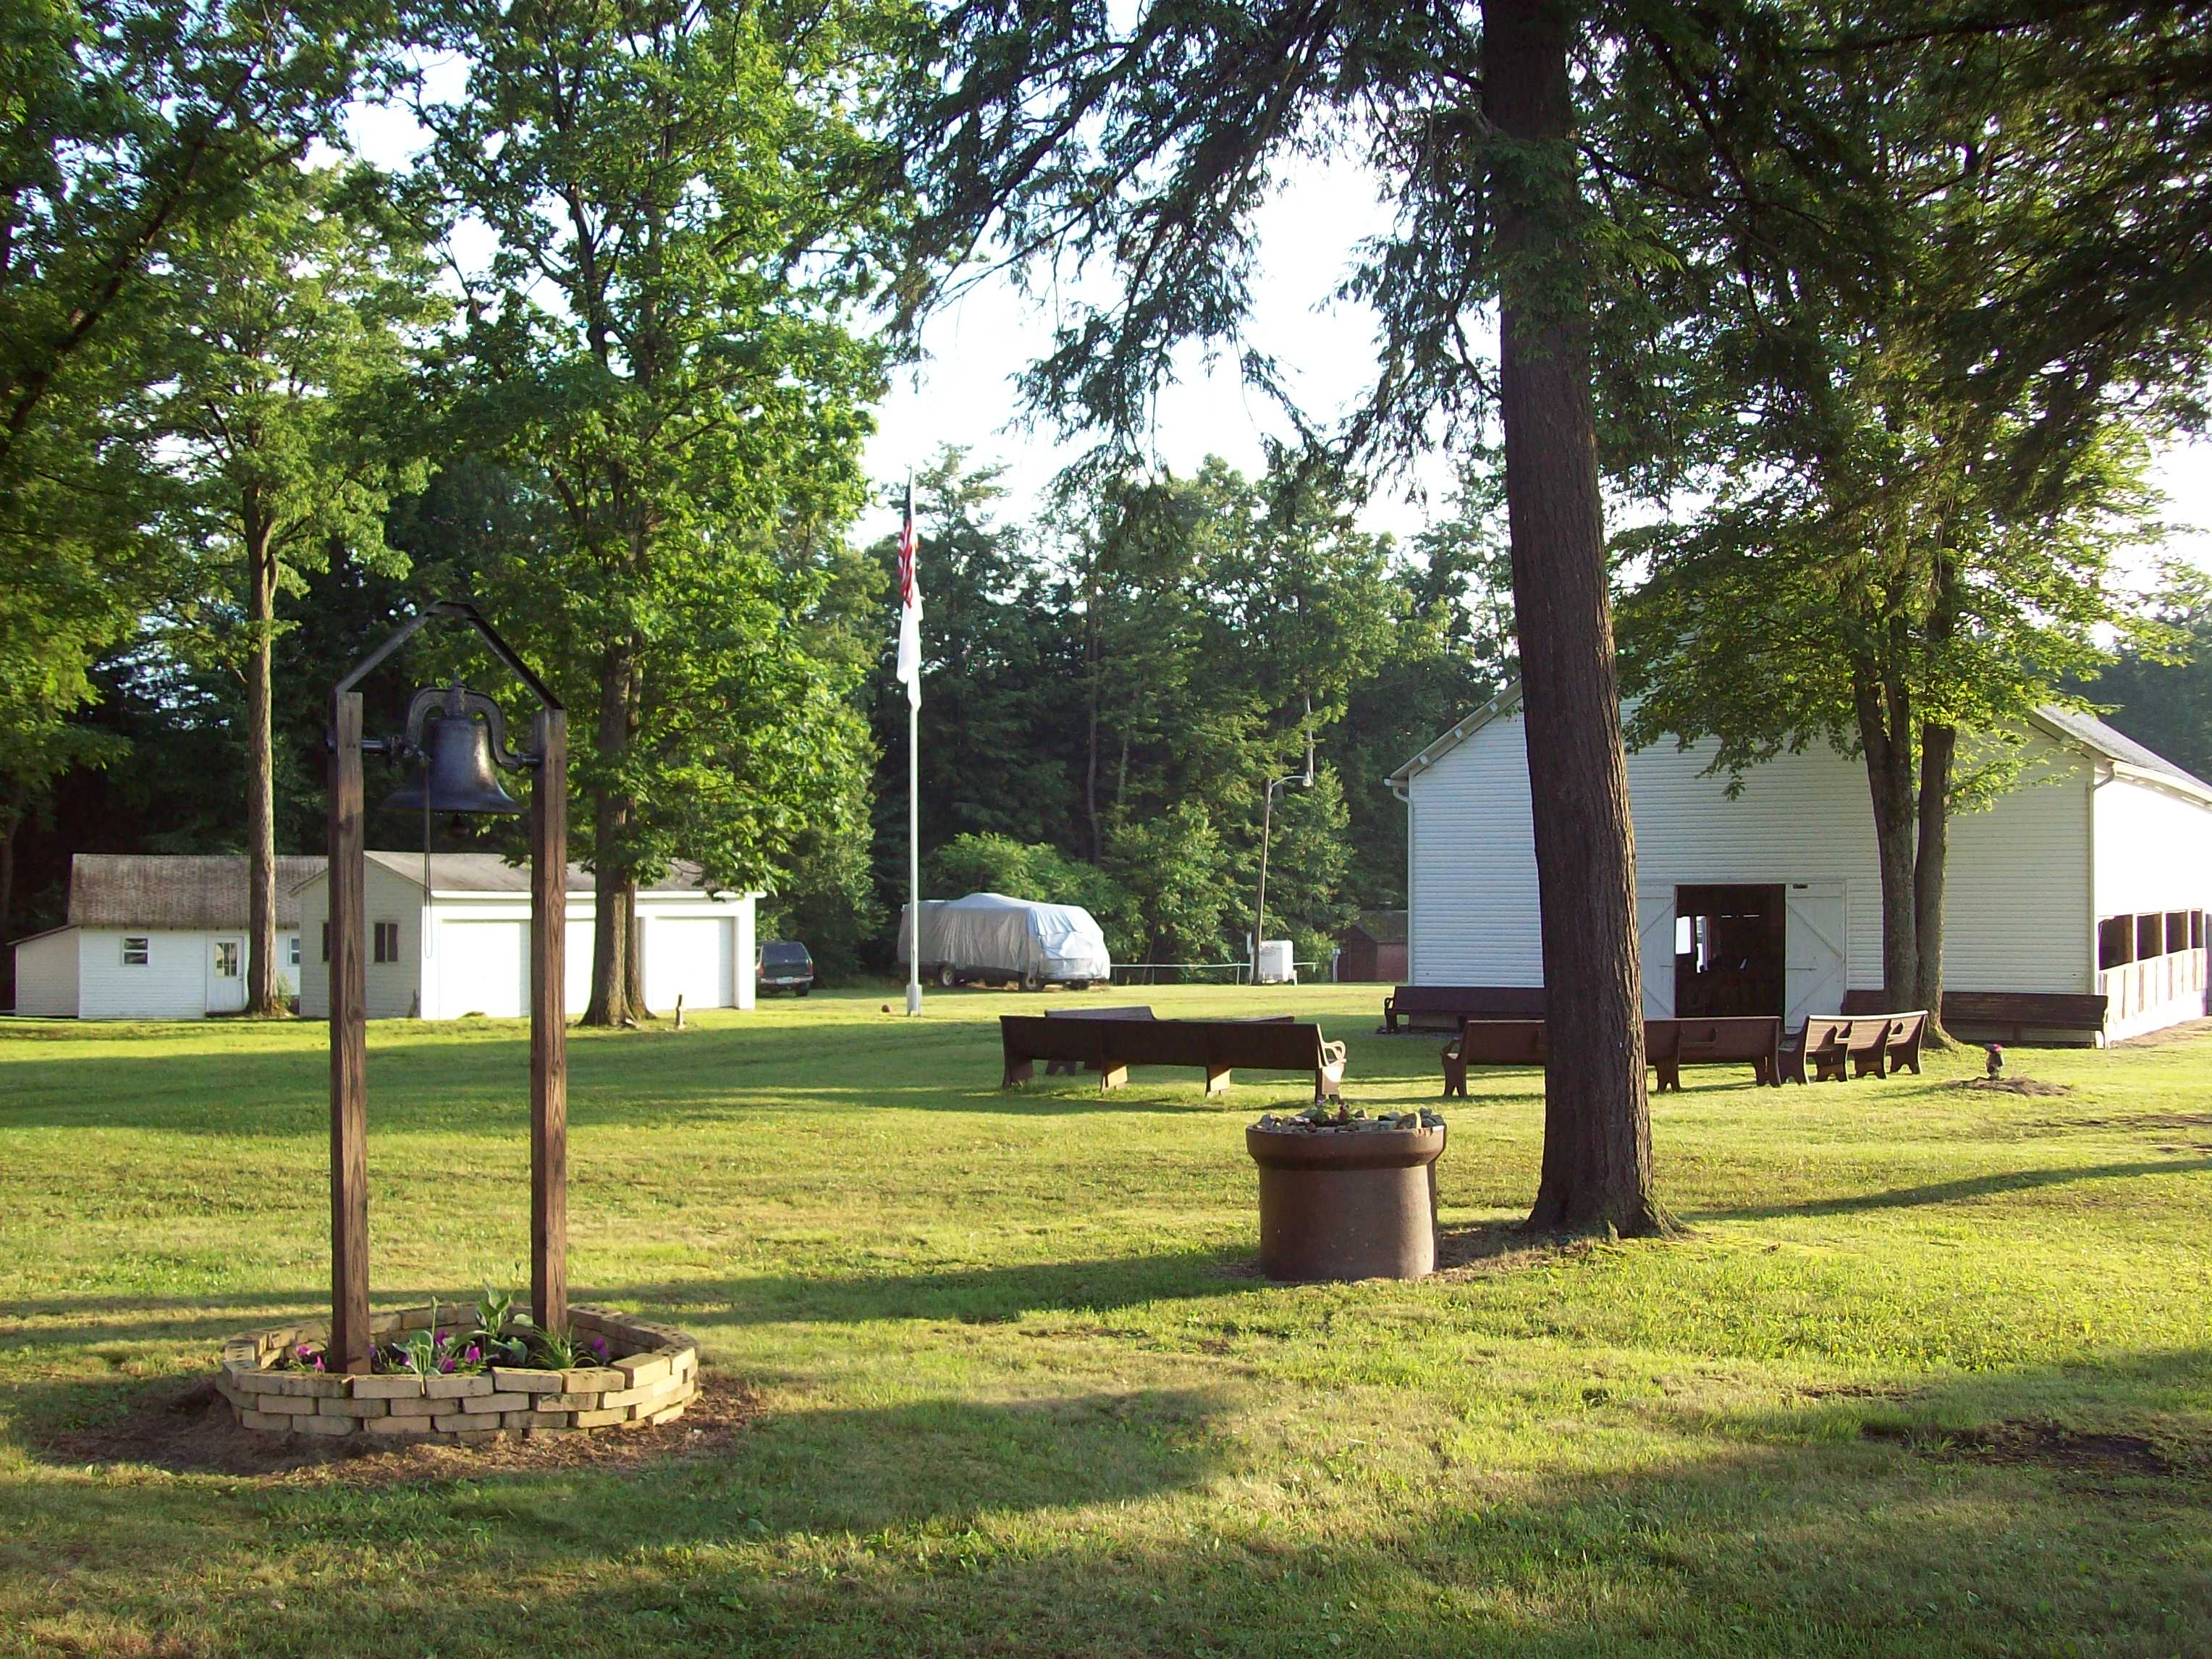 View of campground